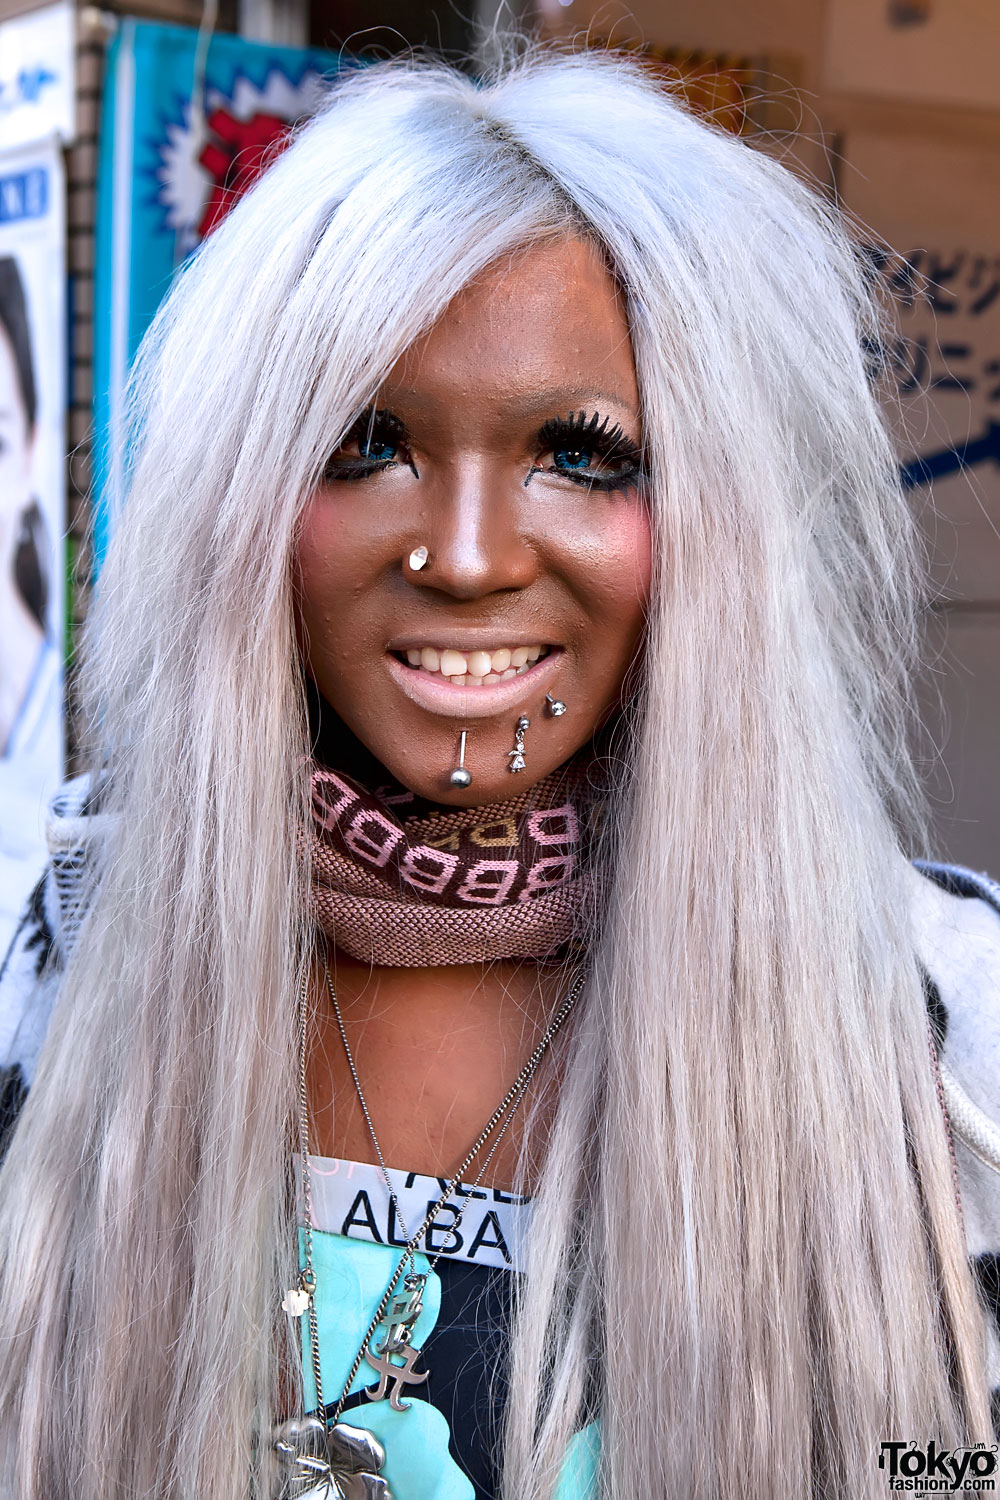 Old School Ganguro Wearing Alba Rosa In Shibuya